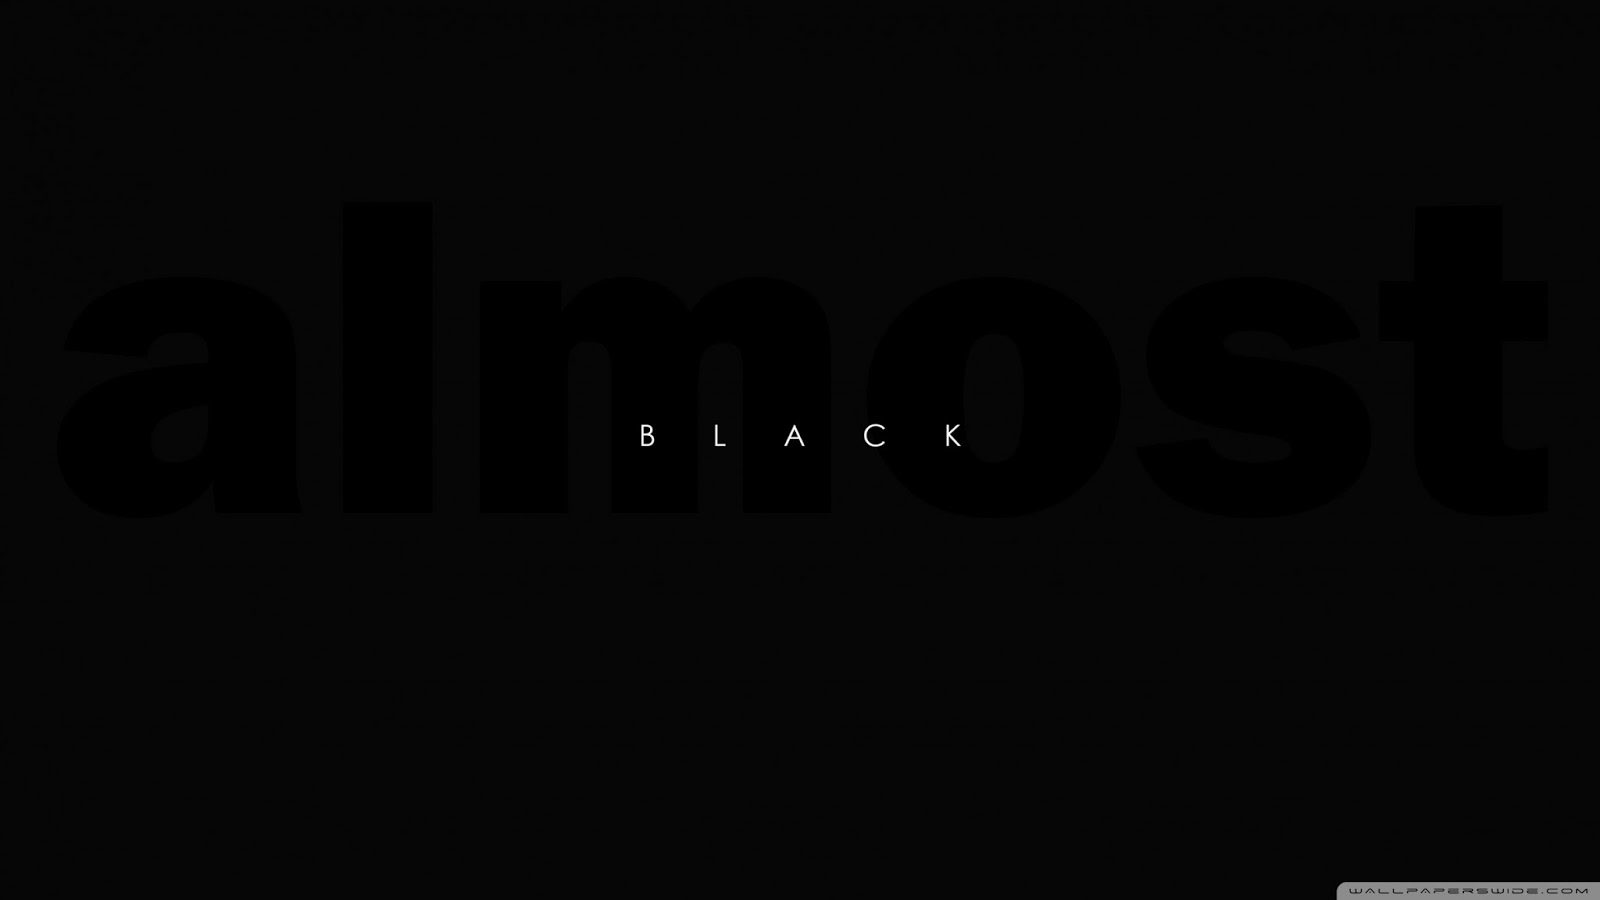 almost_black-wallpaper-2400x1350